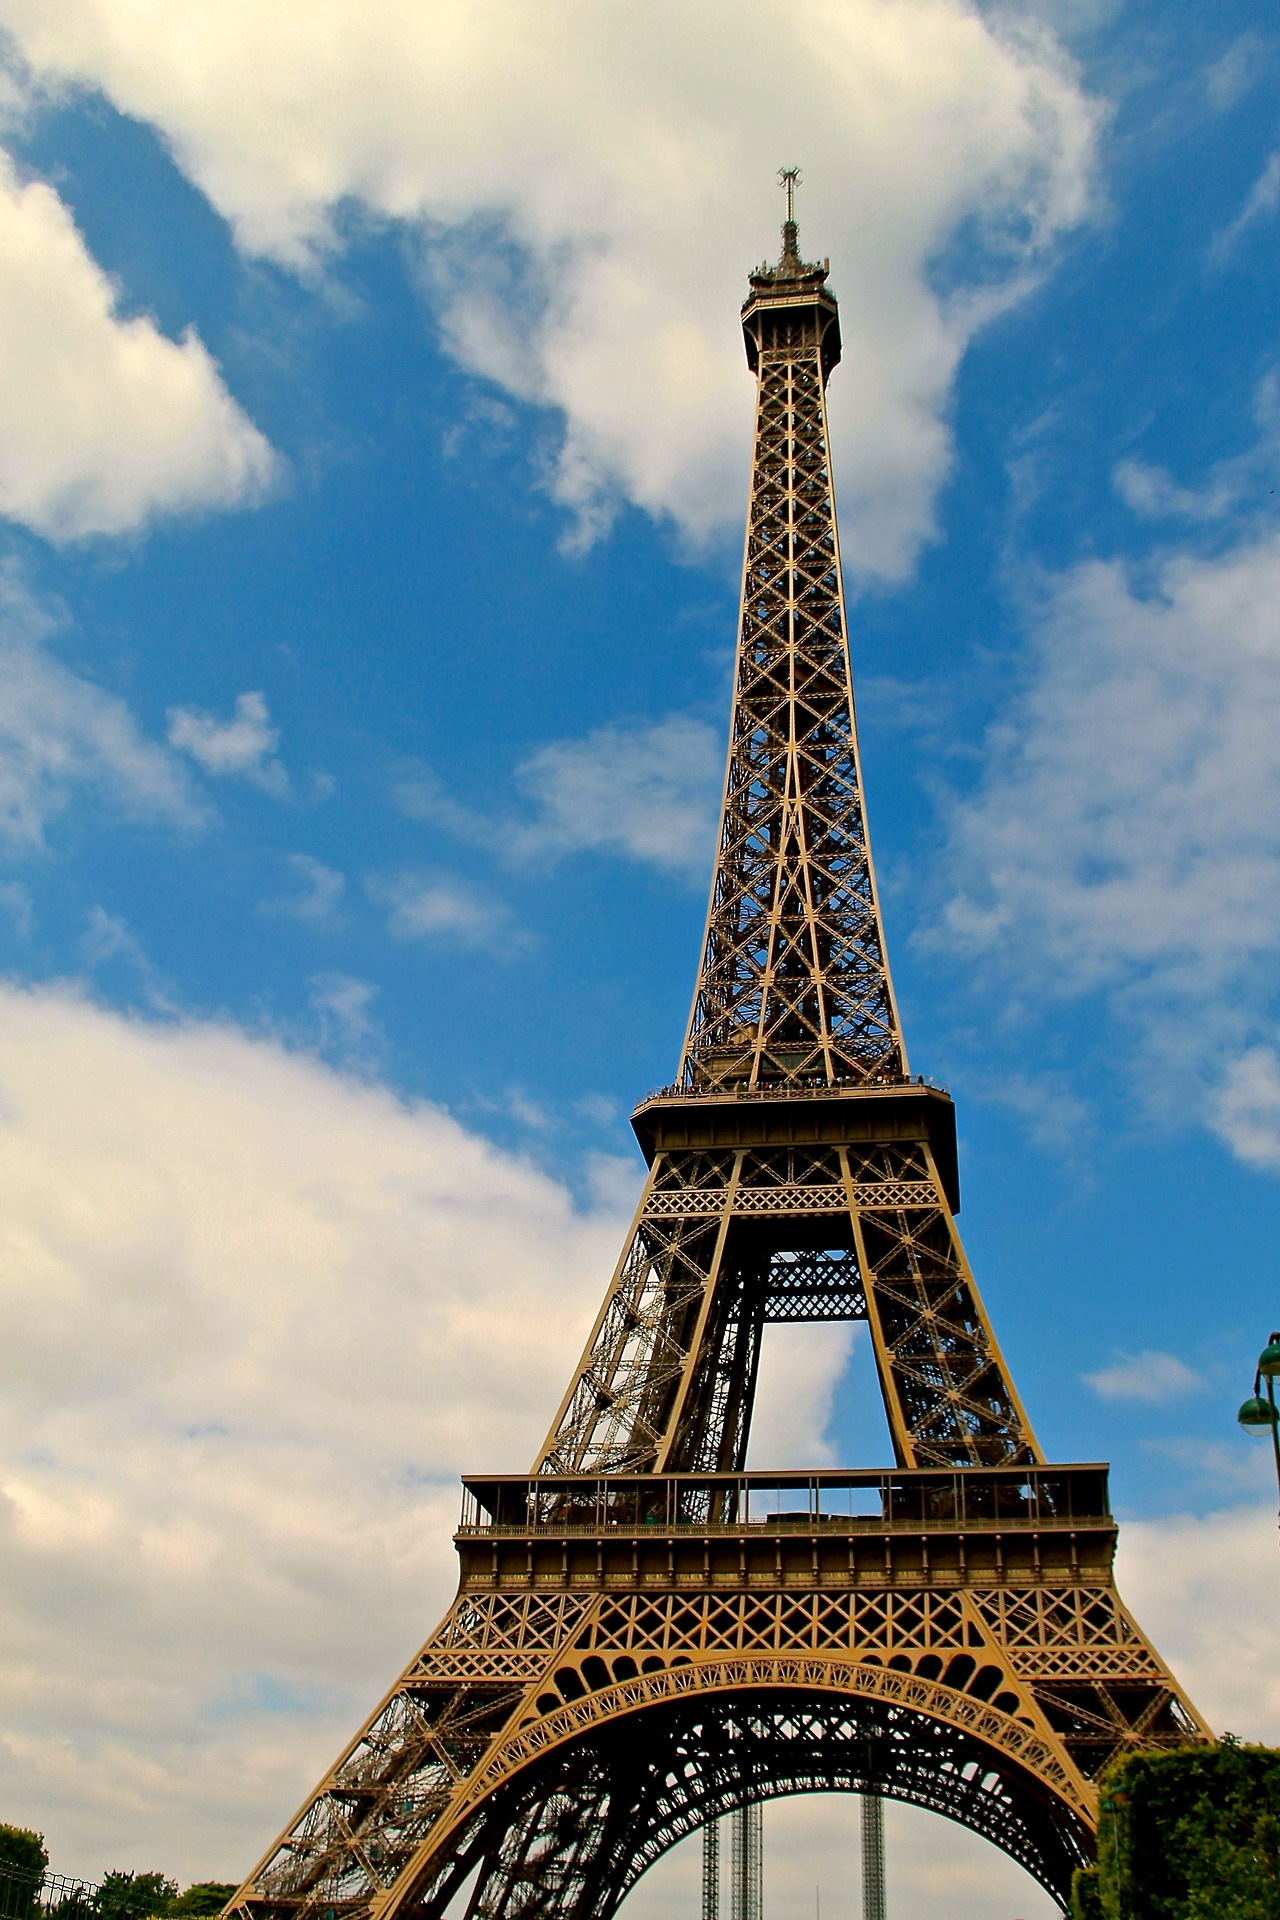 "our-world-in-words :      The Eiffel Tower, France                     Ahh Pareee! To save a little bit of money, Megan and I decided to try out ""Couch Surfing,"" which is an online community of travelers that allow for other travelers to sleep on their couches around the world. I know it sounds pretty strange, but I was recommended to the site about six months ago by another traveller friend and so far have had great success! Each host has a profile on the site with reviews from all their past guests, and pictures of the area they live and their spare bedroom or couch. We stayed with a wonderful man, named Clement, who lived about fifteen minutes walking distance from the Eiffel Tower. He is a frequent host, and we met two other surfers as we were leaving. We arrived in the late afternoon and spent the remainder of the day adjusting, resting, and walking through town. The next day we woke up bright and early and relaxed; all ready to go! We hopped on a metro and went to the Eiffel Tower and an exhibit about the Beatles at the Four Seasons, where they stayed in the seventies, and where Clement currently works. Then we wandered around for hours seeing the Notre Dame, the Arch de Triumph, the Pont d'arts (also called the Lover's Bridge), and Victor Hugo's house. Then we attempted to find the Bastille…I say attempted because after walking past it at least a dozen times we finally asked someone where it was, only to realize that the Bastille is not a  building , but rather and entire area with a monument in the middle. (How did they storm that!?) We continued on and saw street performers, ate more ice cream and crepes, rode in a ""cycle-politian,"" which is a little cart attached to a bike that pulls you around the city. We ate in a tiny café by Victor Hugo's house and then headed back to Clement's to get ready to go out. He had other couch surfers staying our second night, so we switched to a different apartment with a guy named Jeremy, who lived about ten minutes away and works in Versailles for the company that produces World of Warcraft and other games. The group of us, hosts and guests alike, piled in a cab and headed to the Eiffel Tower where we sat on the grass and drank wine and enjoyed the gorgeous lights at night. We then attempted to go to some bars that were once Speakeasys, but they were all closed and so we headed home to fall asleep."